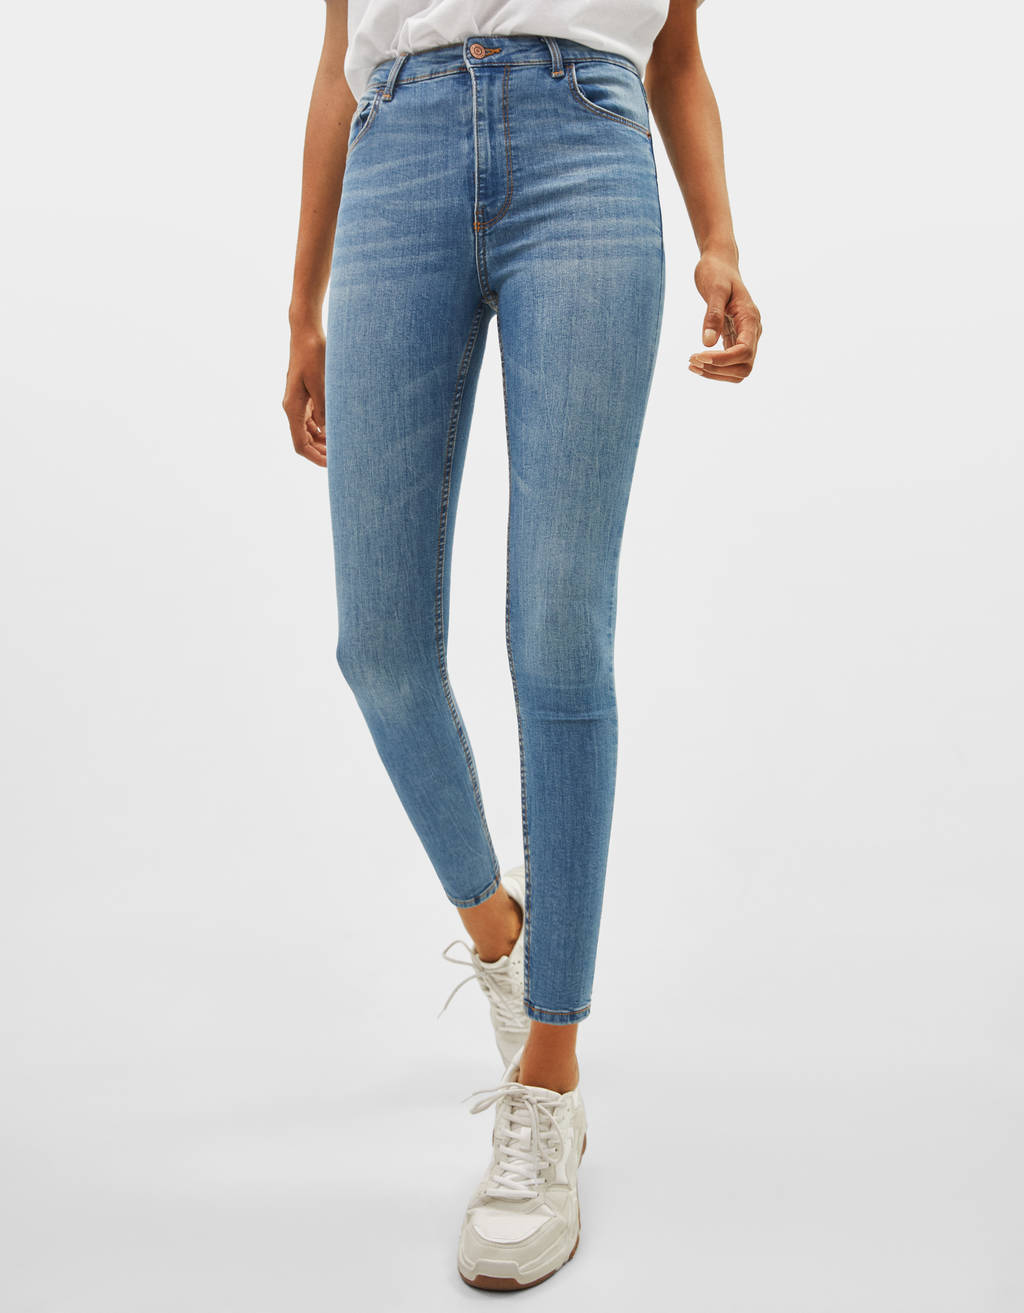 5133784b2c Women's Jeans - Summer Sale 2019 | Bershka